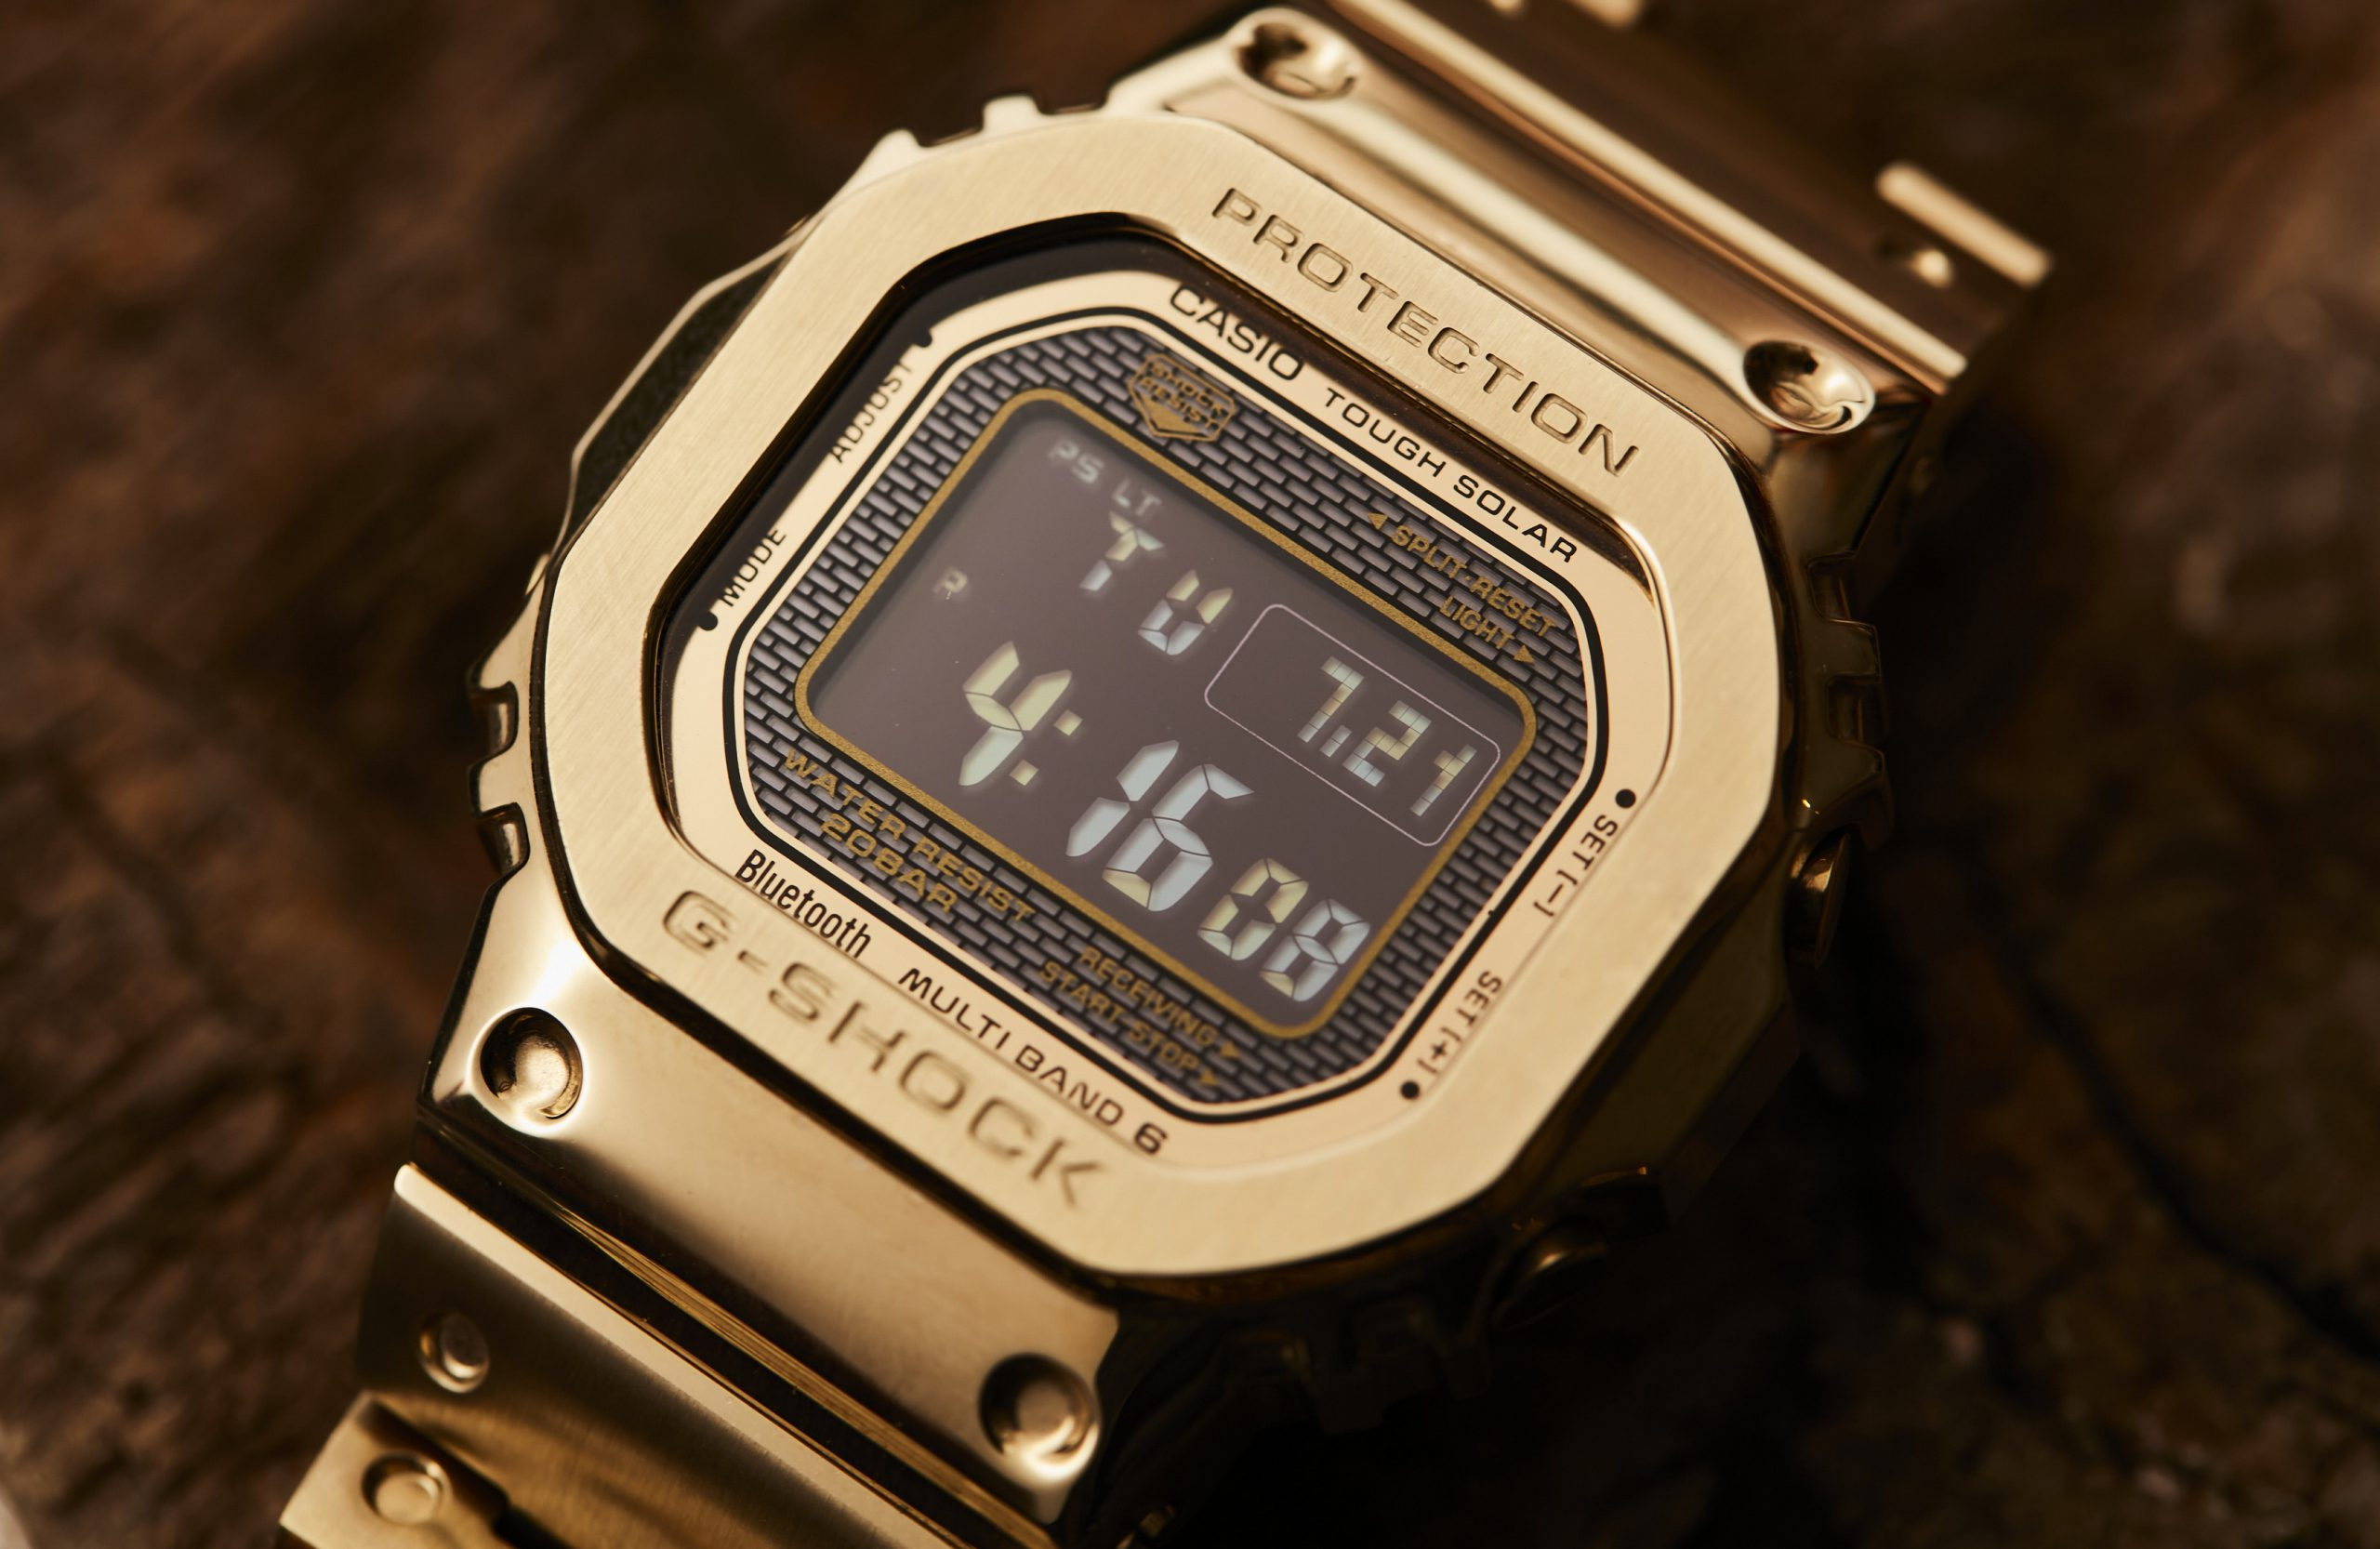 EDITOR'S PICK: My year with the Casio G-Shock Full Metal GMW-B5000GD-9.